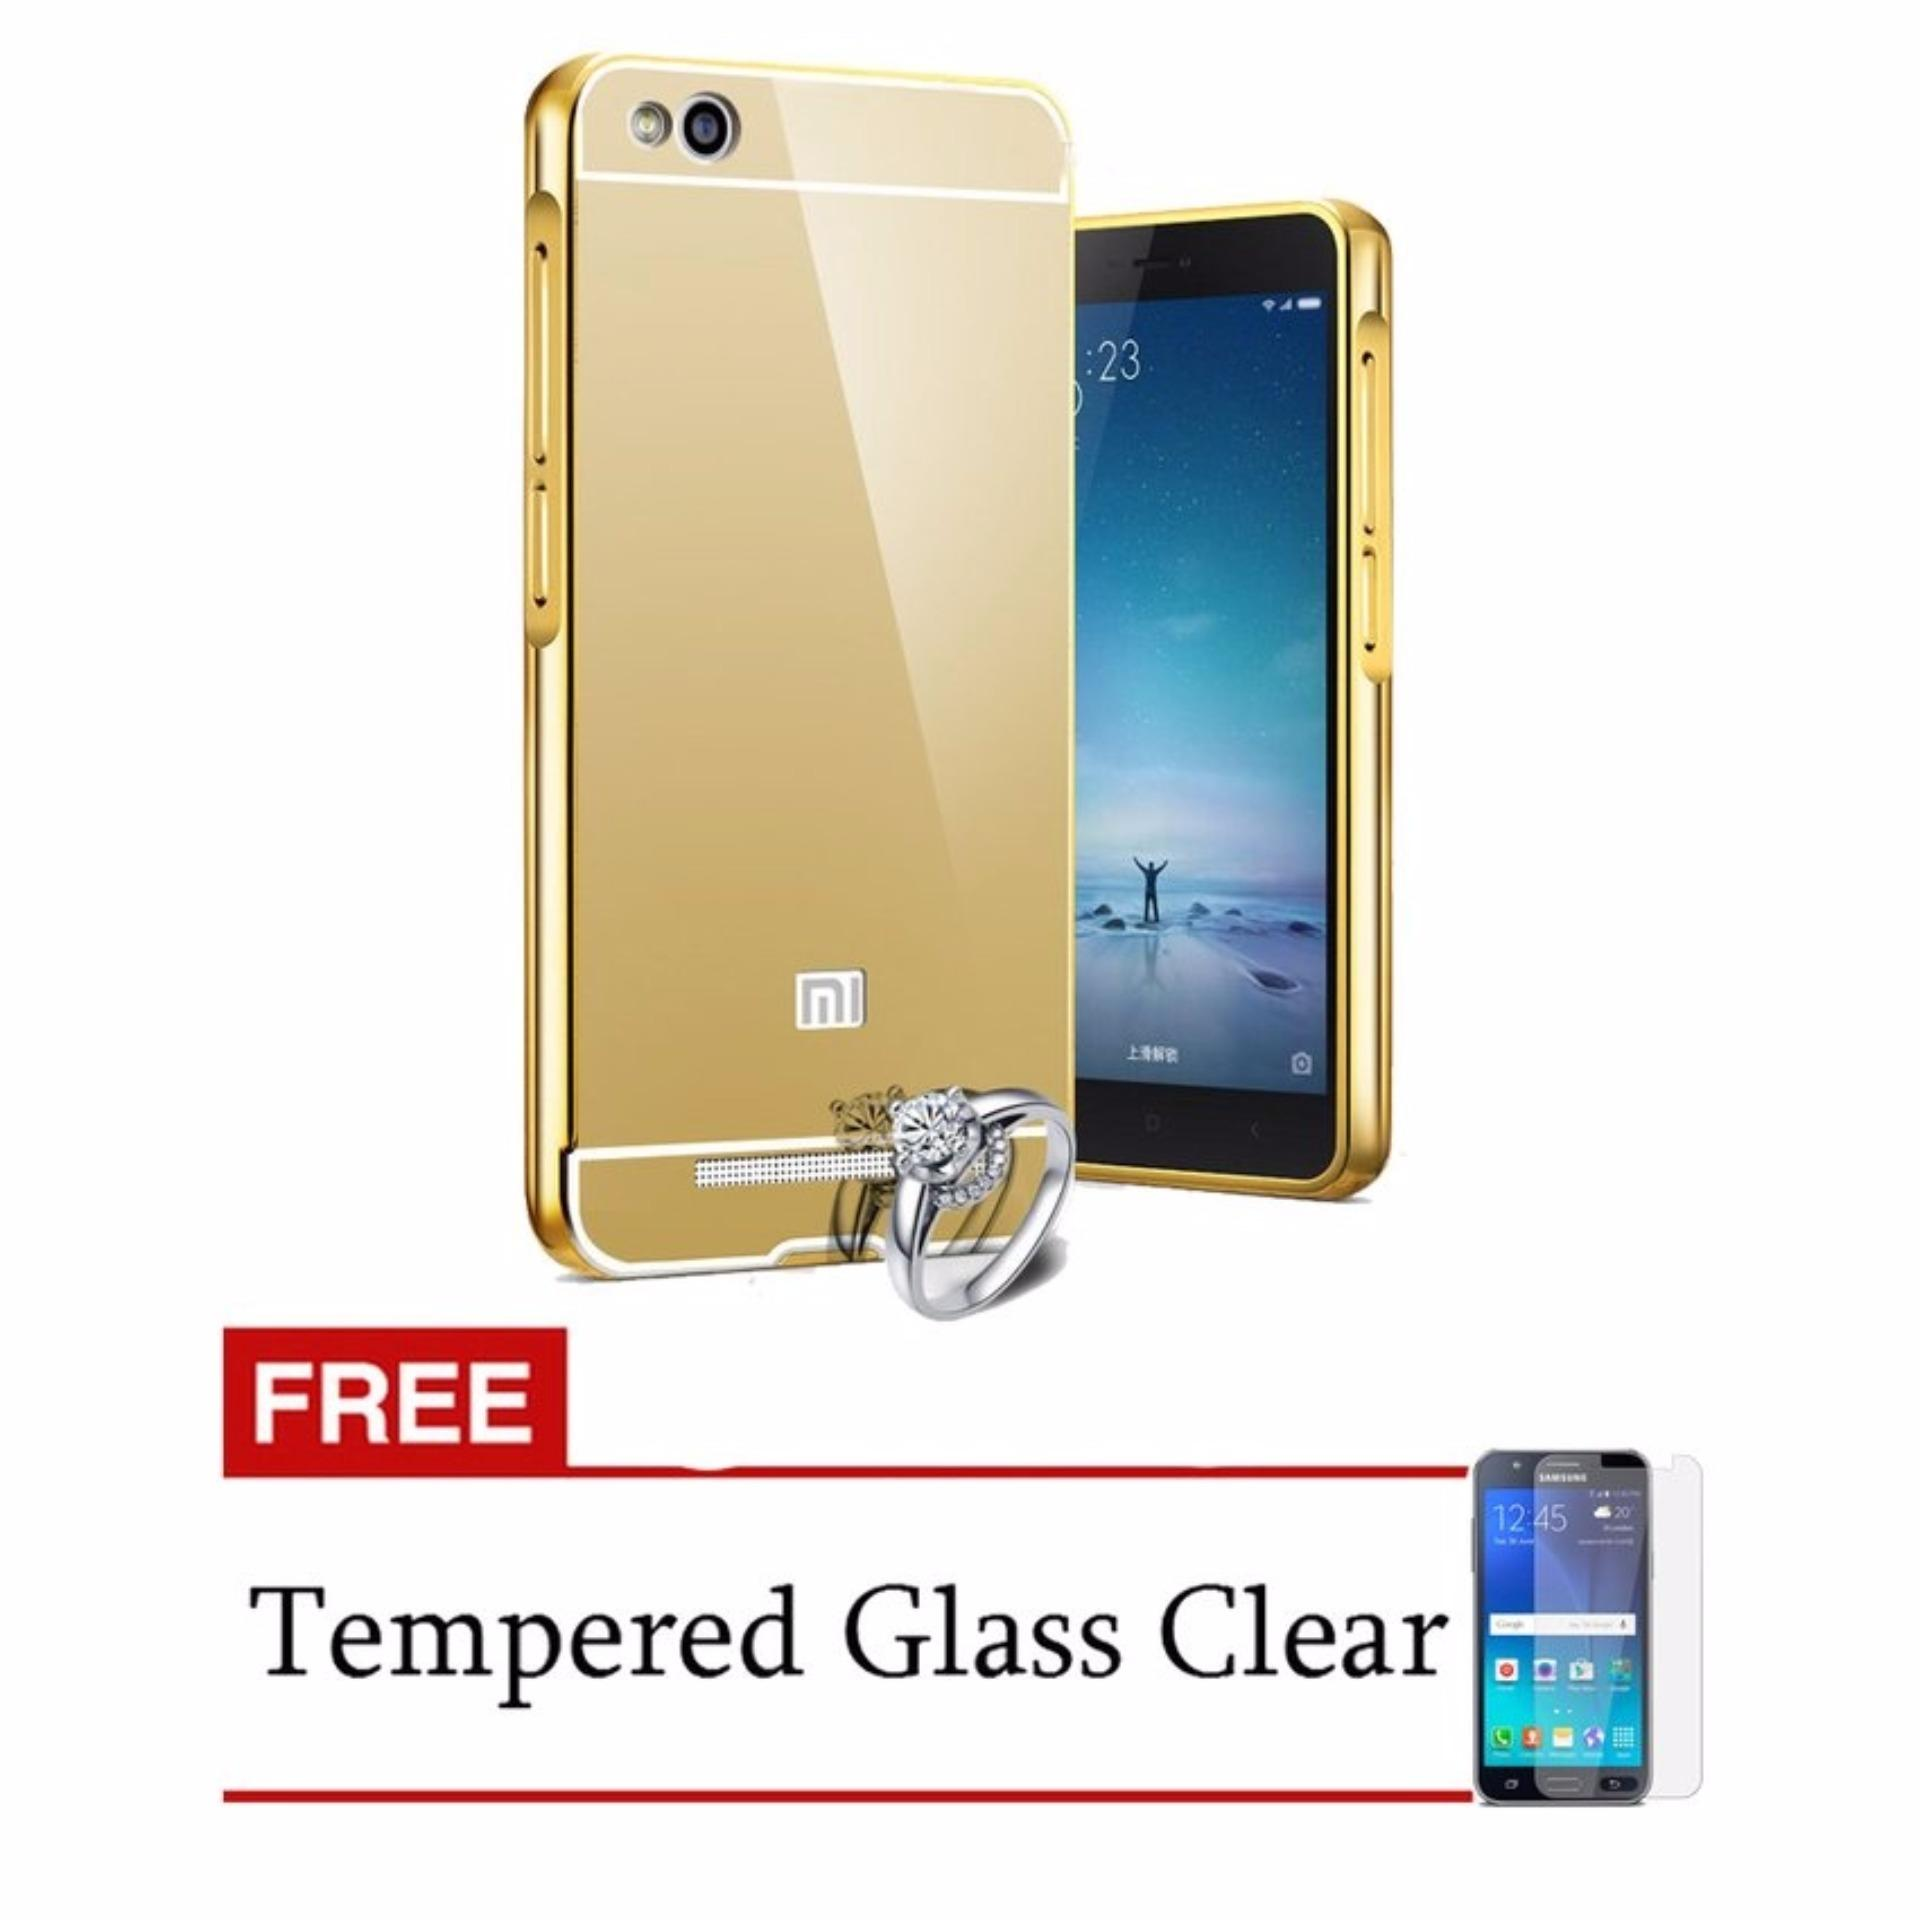 Bumper Mirror Xiaomi Redmi 4A + Free Tempered Glass